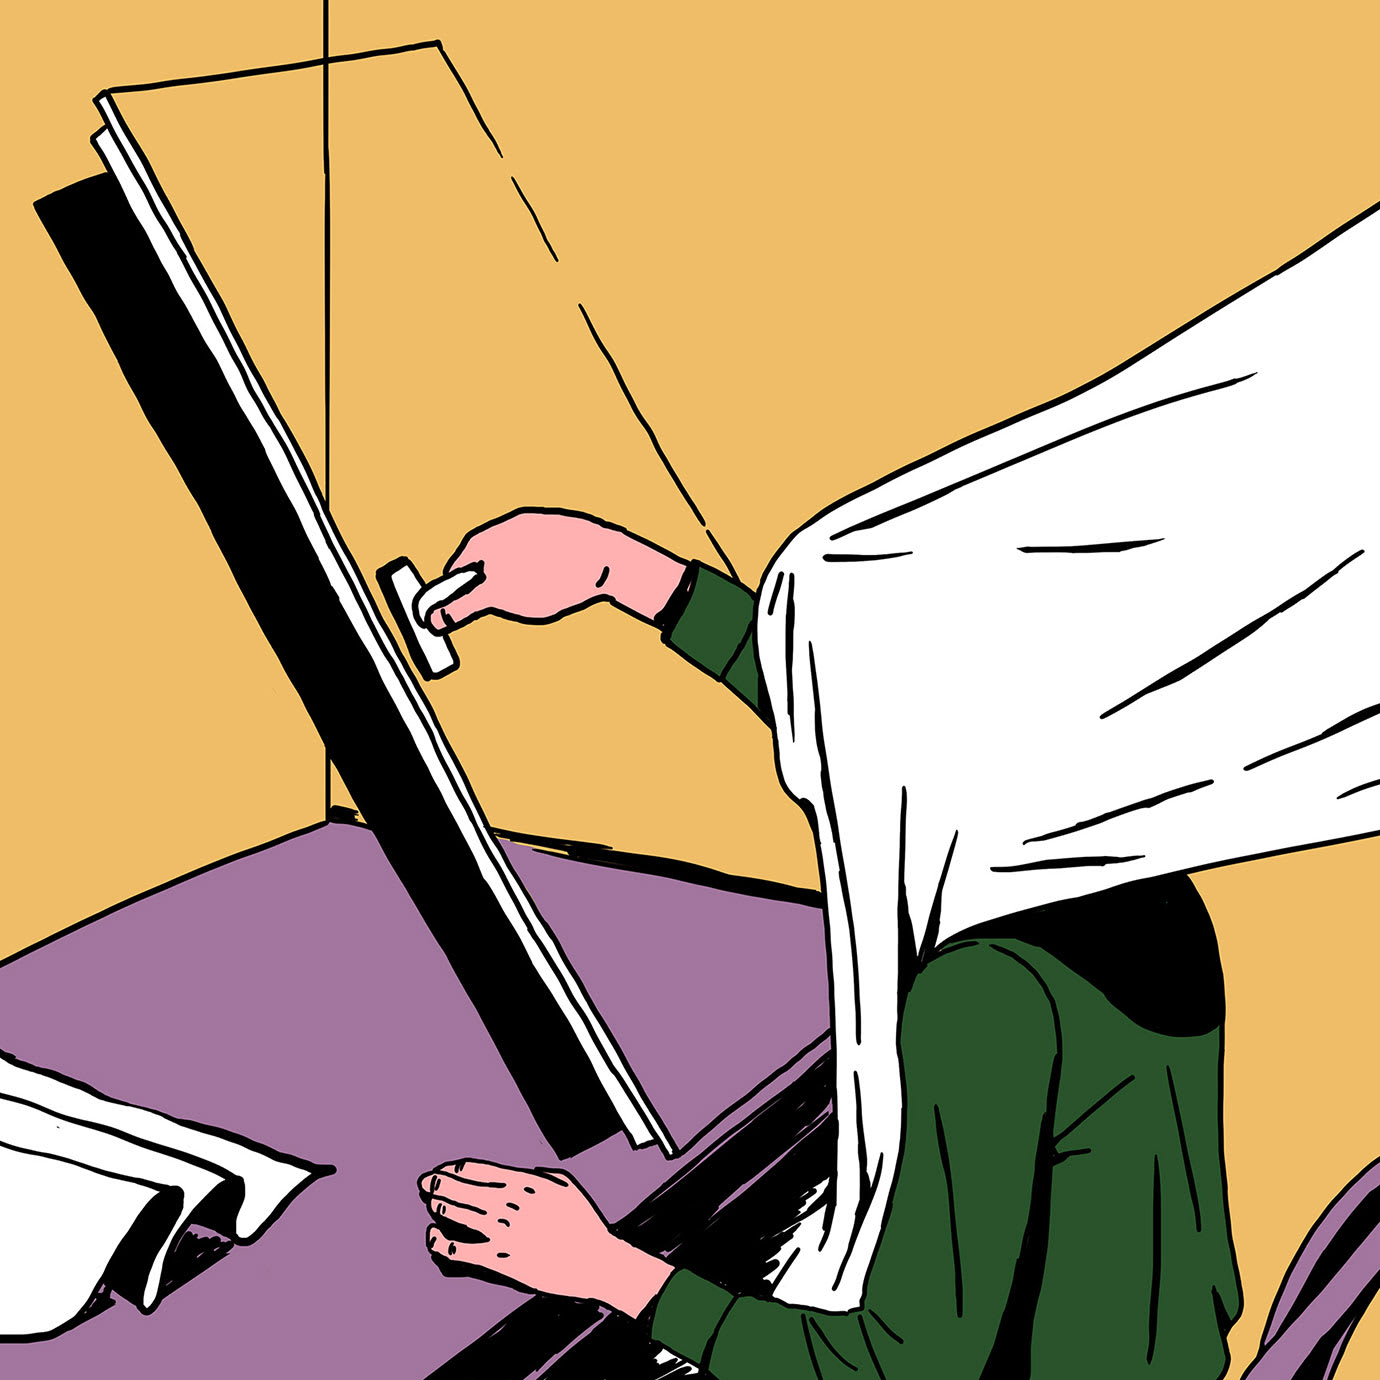 A surreal illustration of a person opening a mirrored door with a white blanket on their head.